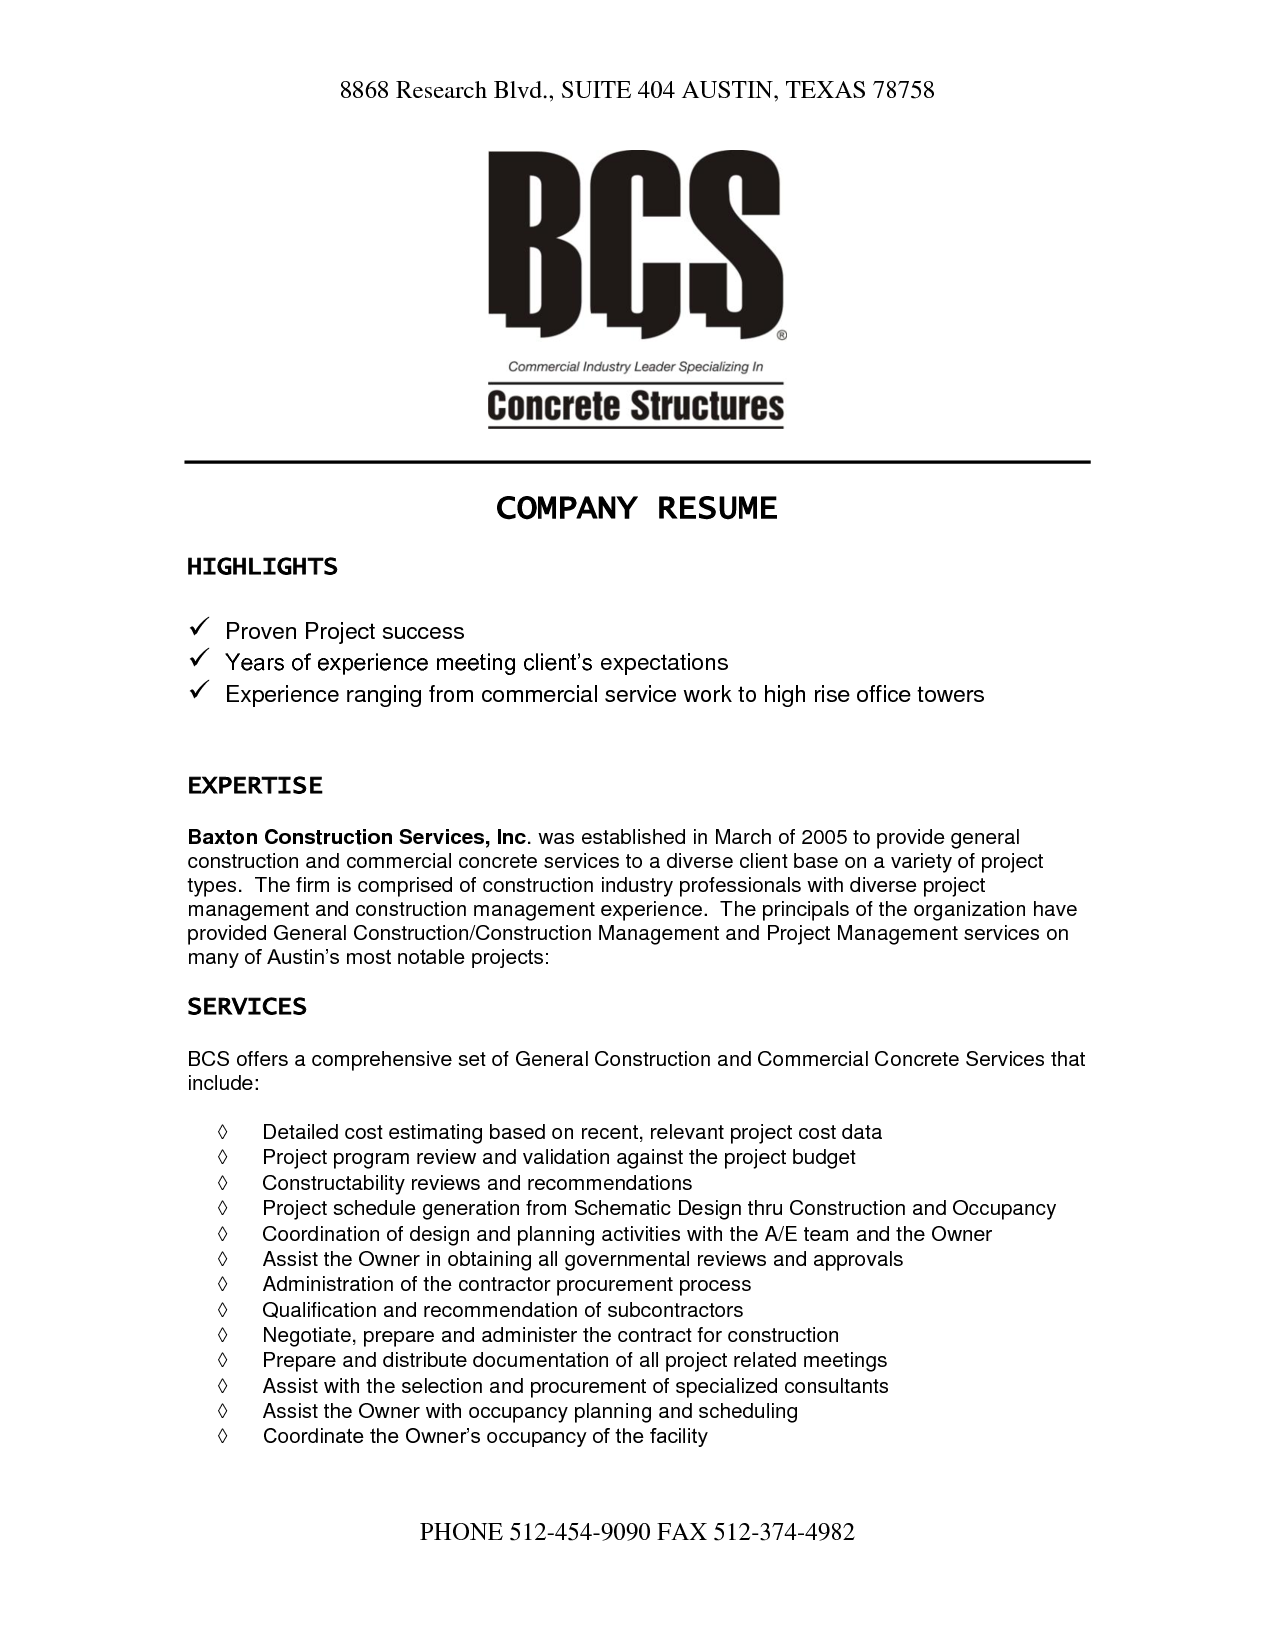 Construction Company Resume Template